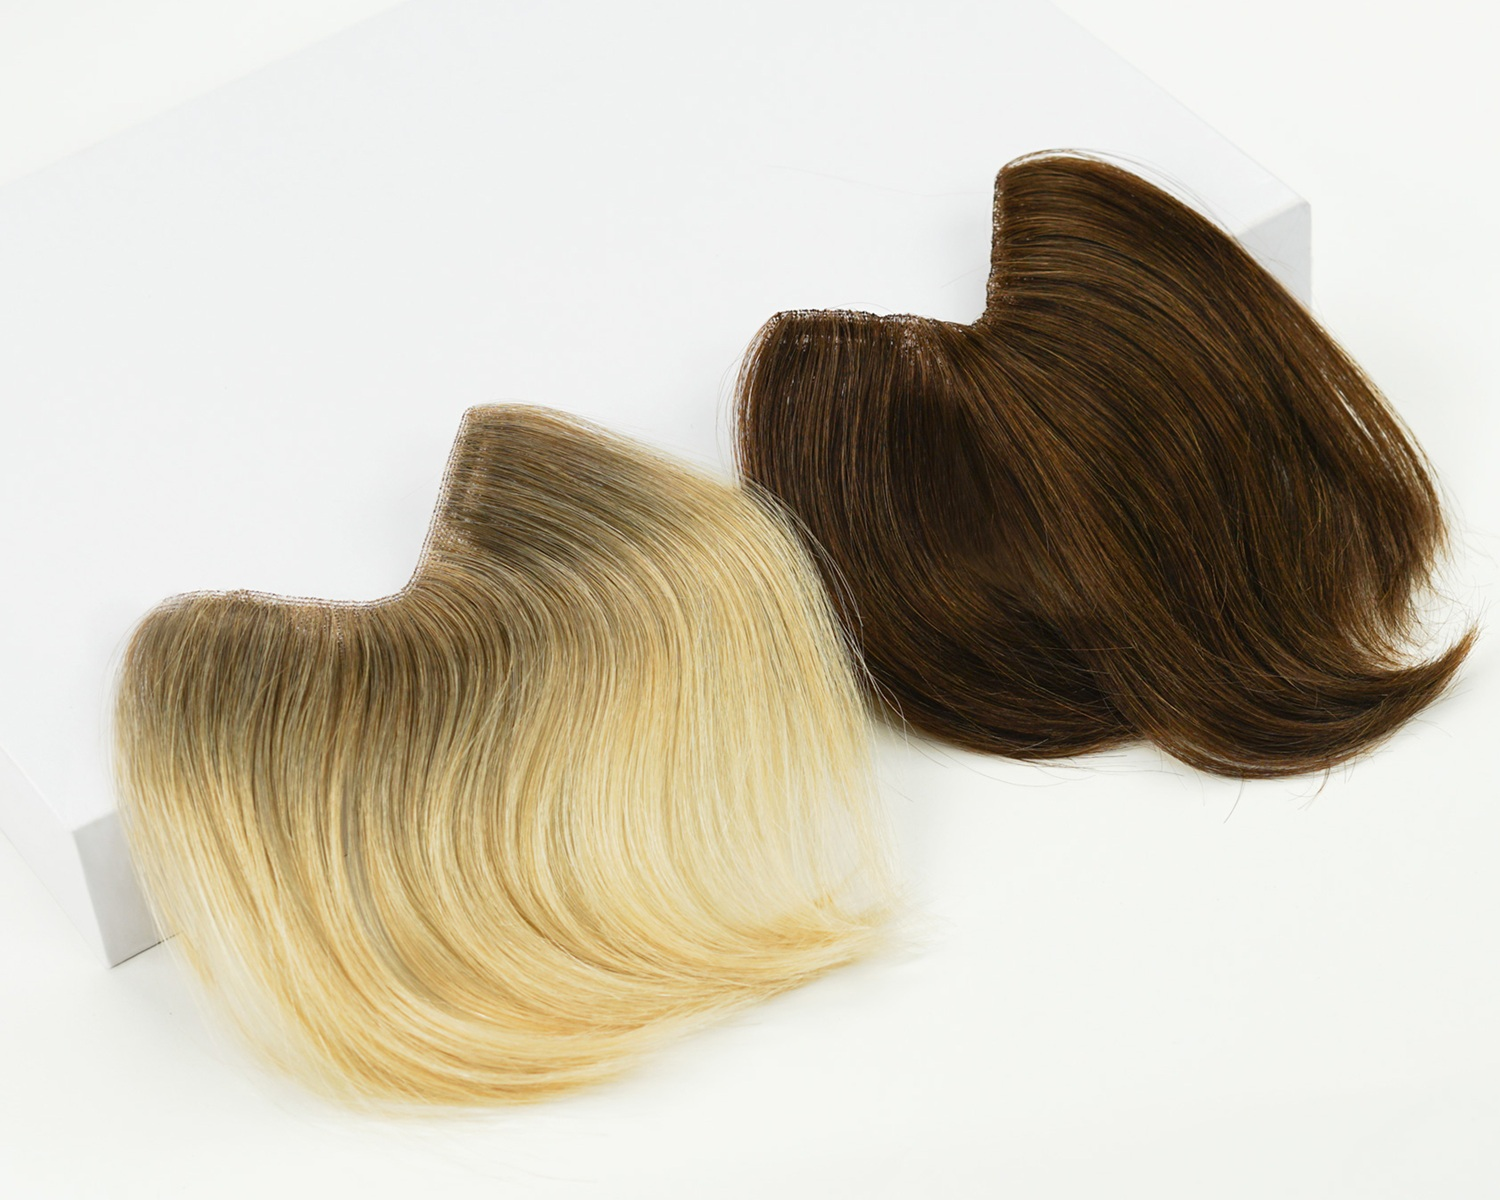 Joi Bangs - Before you decide to chop your beautiful hair for bangs, try our no commitment (and most importantly no regret!) bang additions for a total transformation.